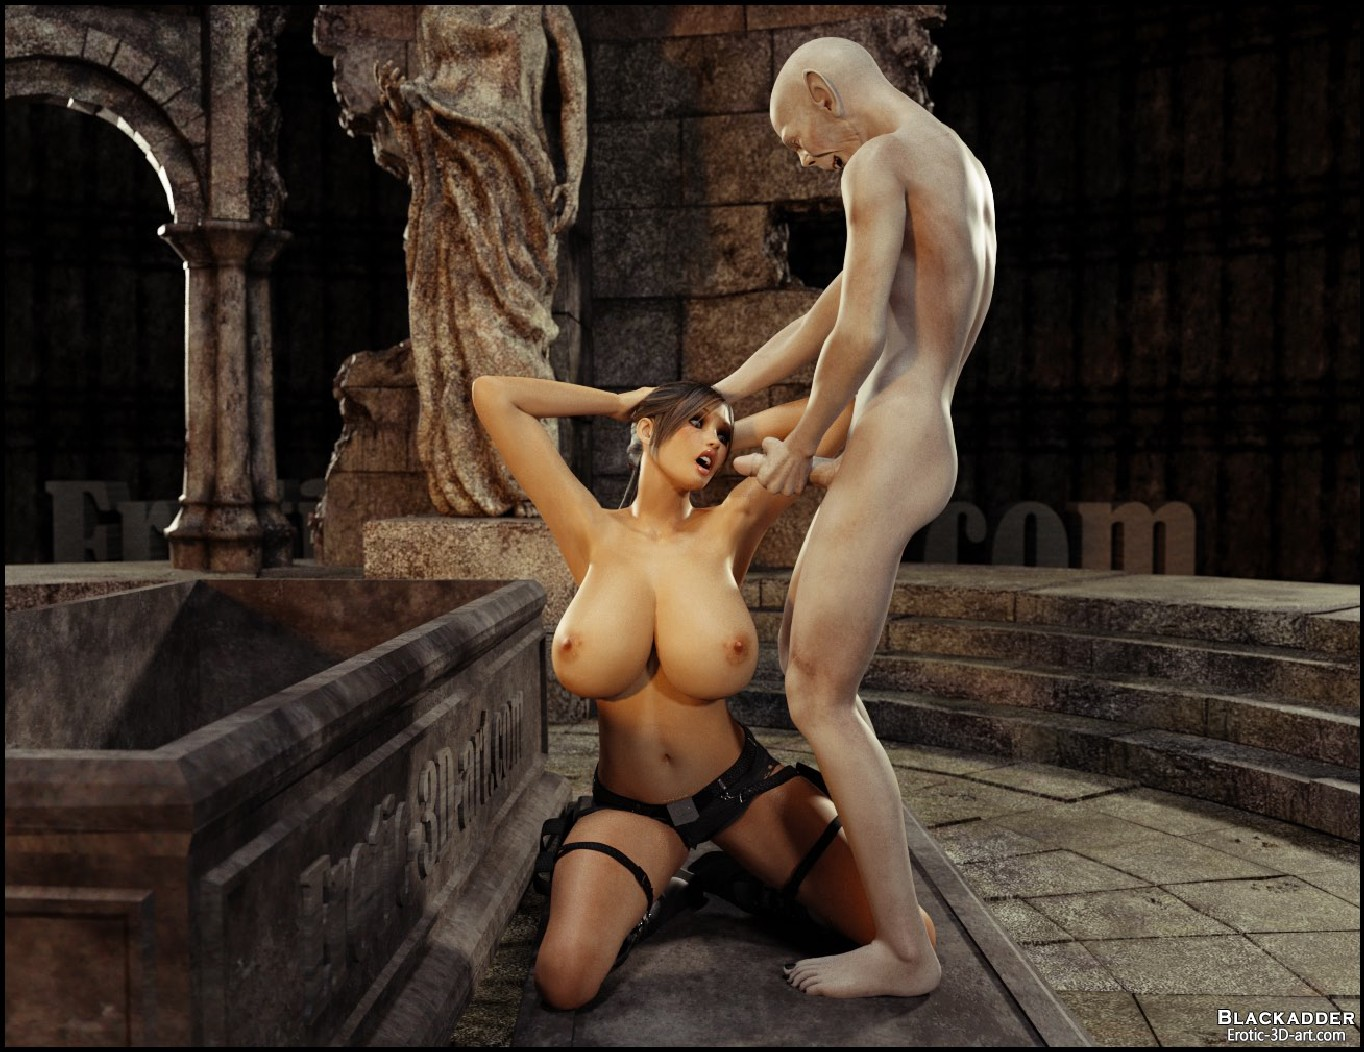 Free lara croft 3d monster porn porncraft image